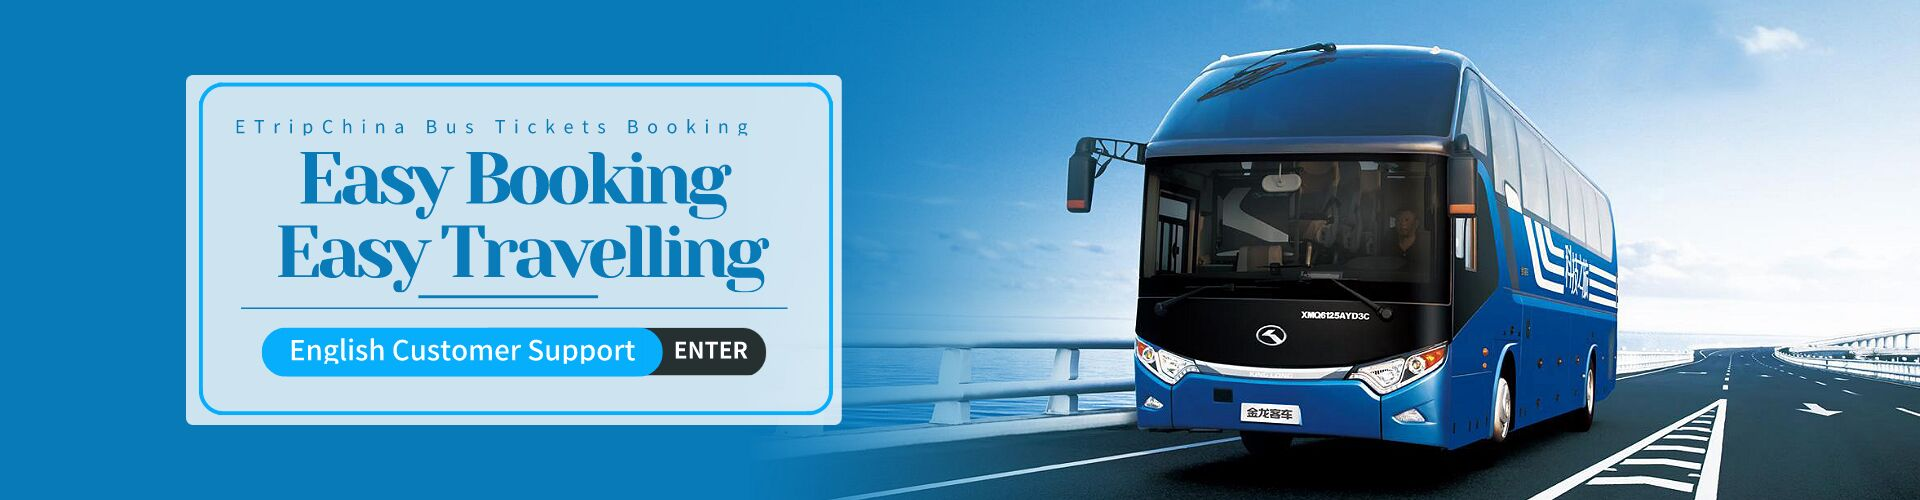 China bus tickets booking